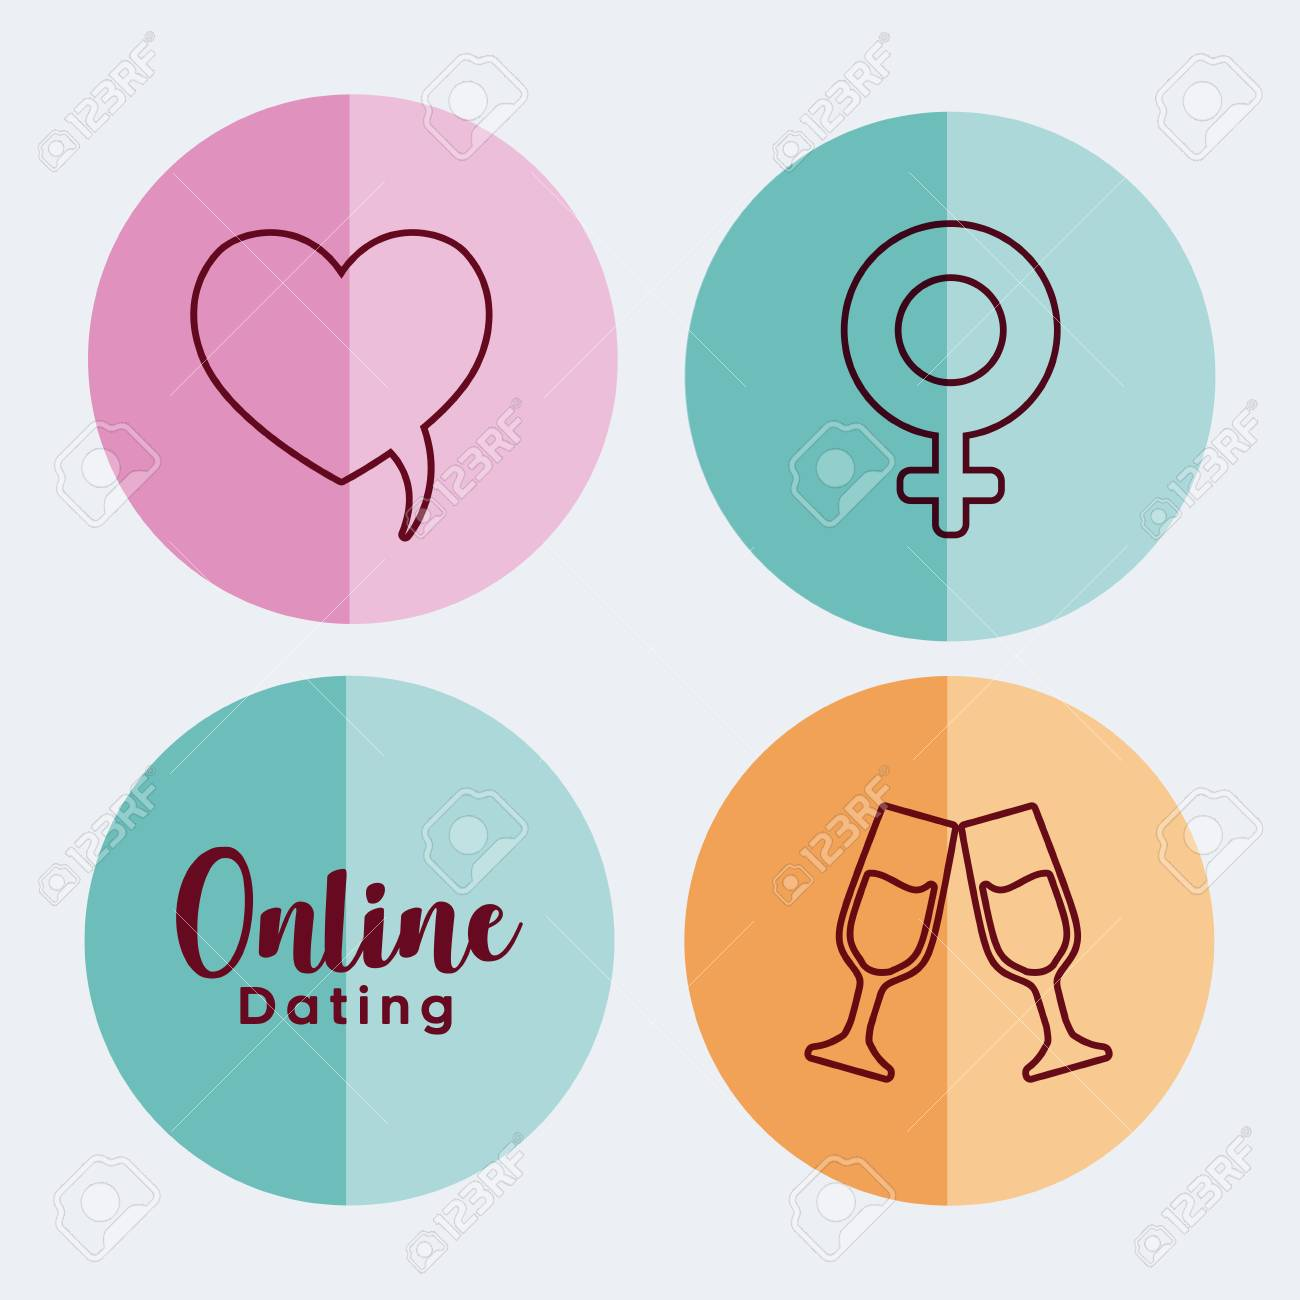 Over online dating